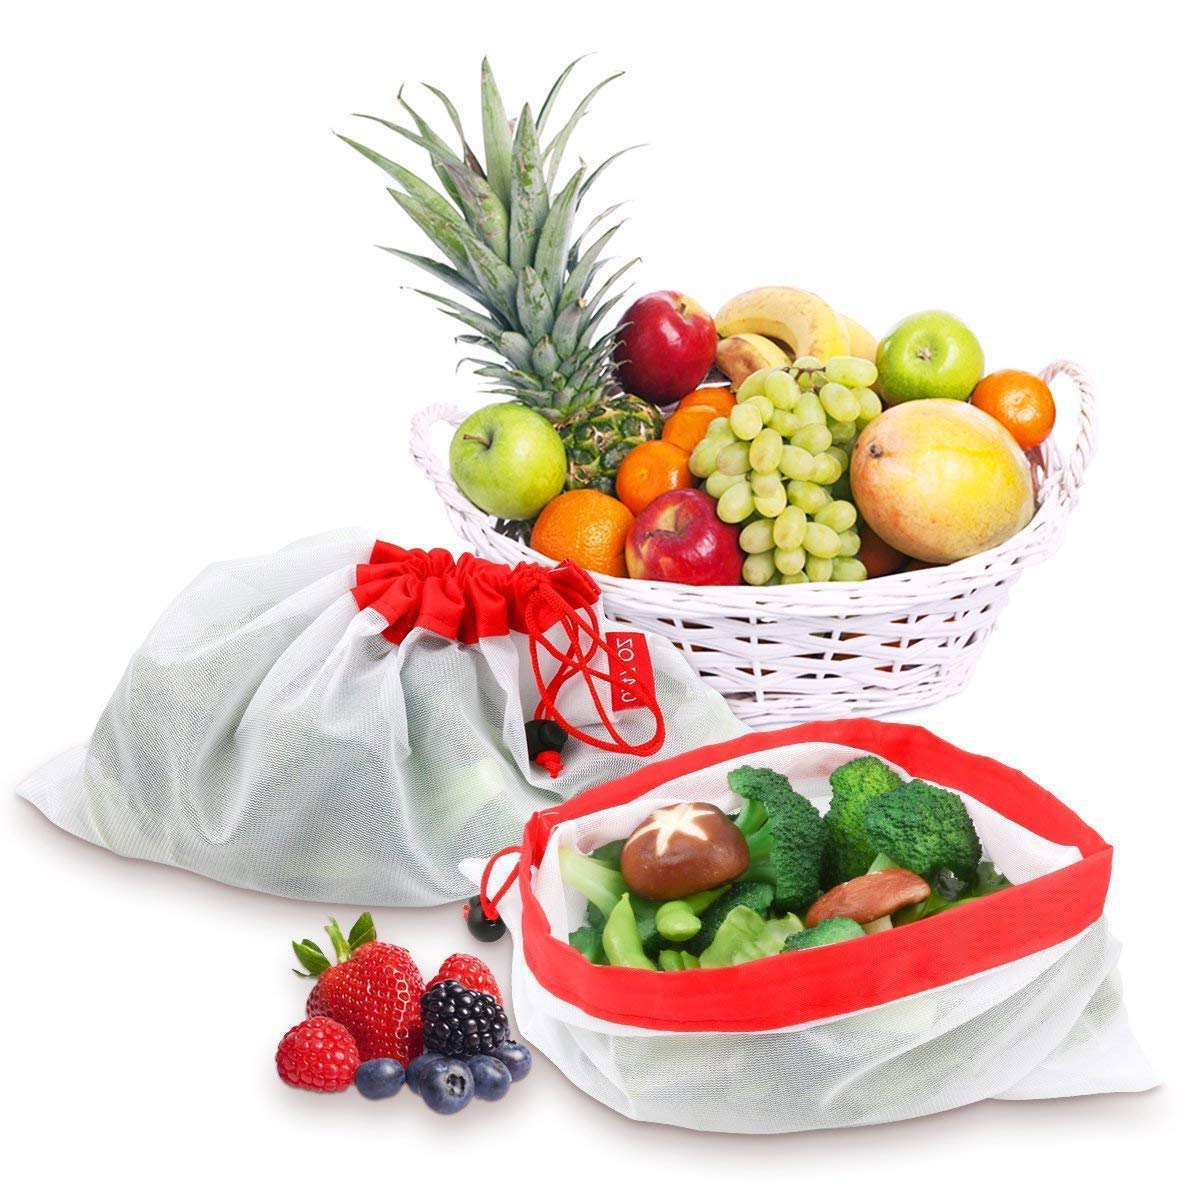 POWERbeast Reusable Grocery Bags Eco Friendly Washable Produce Mesh Bags with Drawstrings for Shopping & Storage Fruit Vegetable and Toys,Set of 12